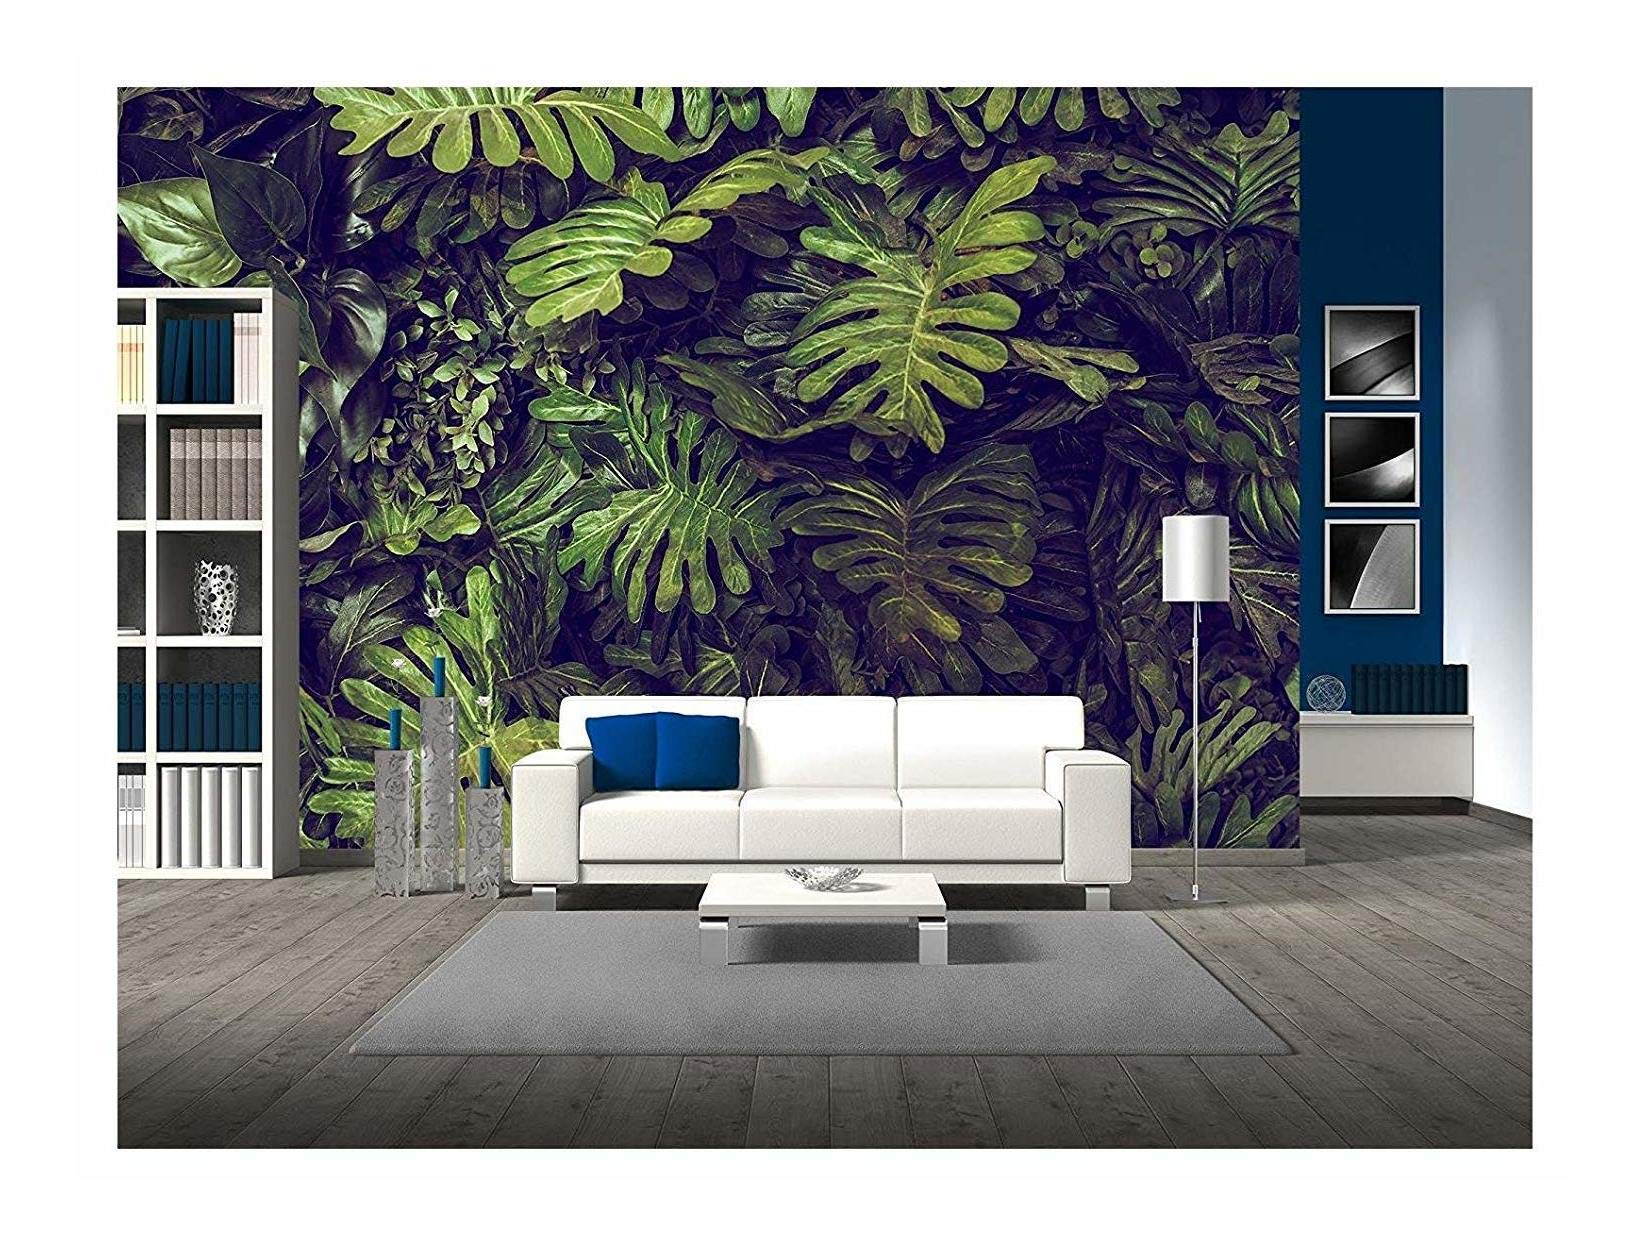 wall26 - Green Monstera Leaves Texture for Background - Top View - in Dark Tone. - Removable Wall Mural | Self-Adhesive Large Wallpaper - 100x144 inches